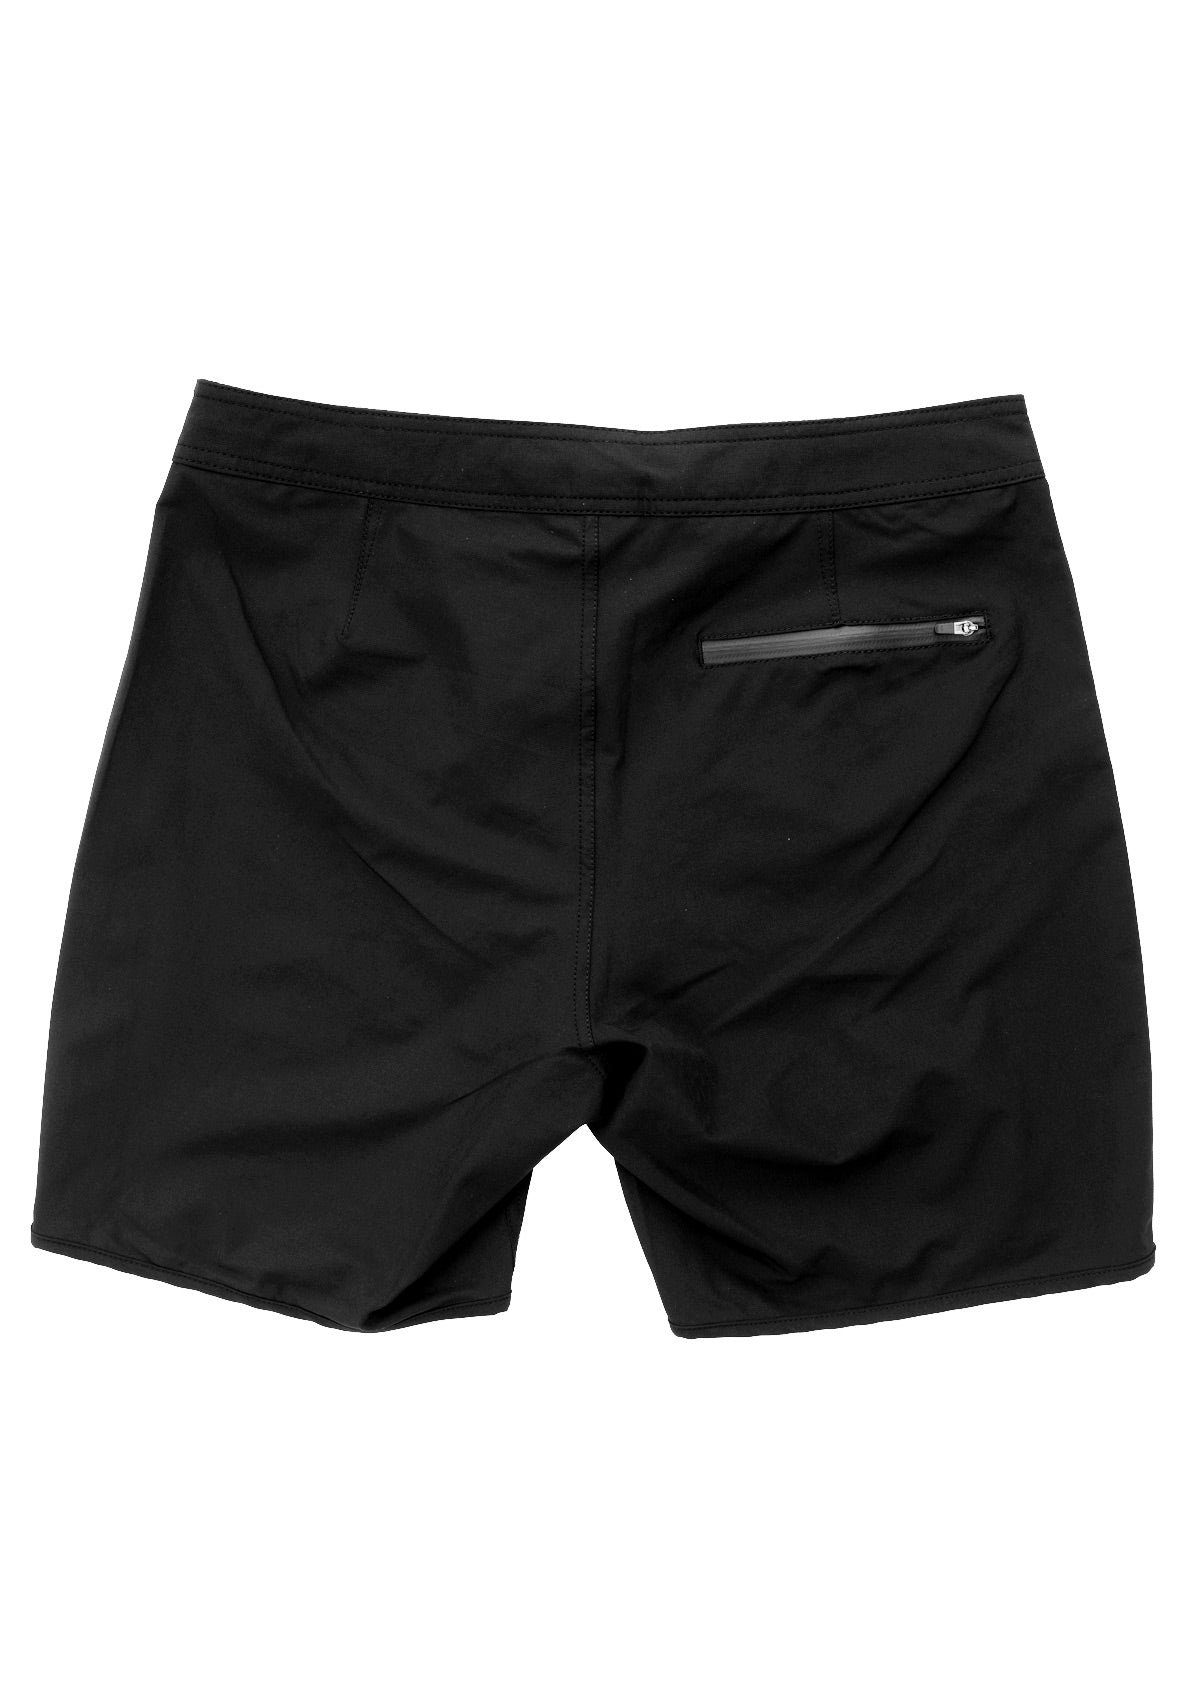 needessentials scallop mens surfing boardshorts non branded black swimming